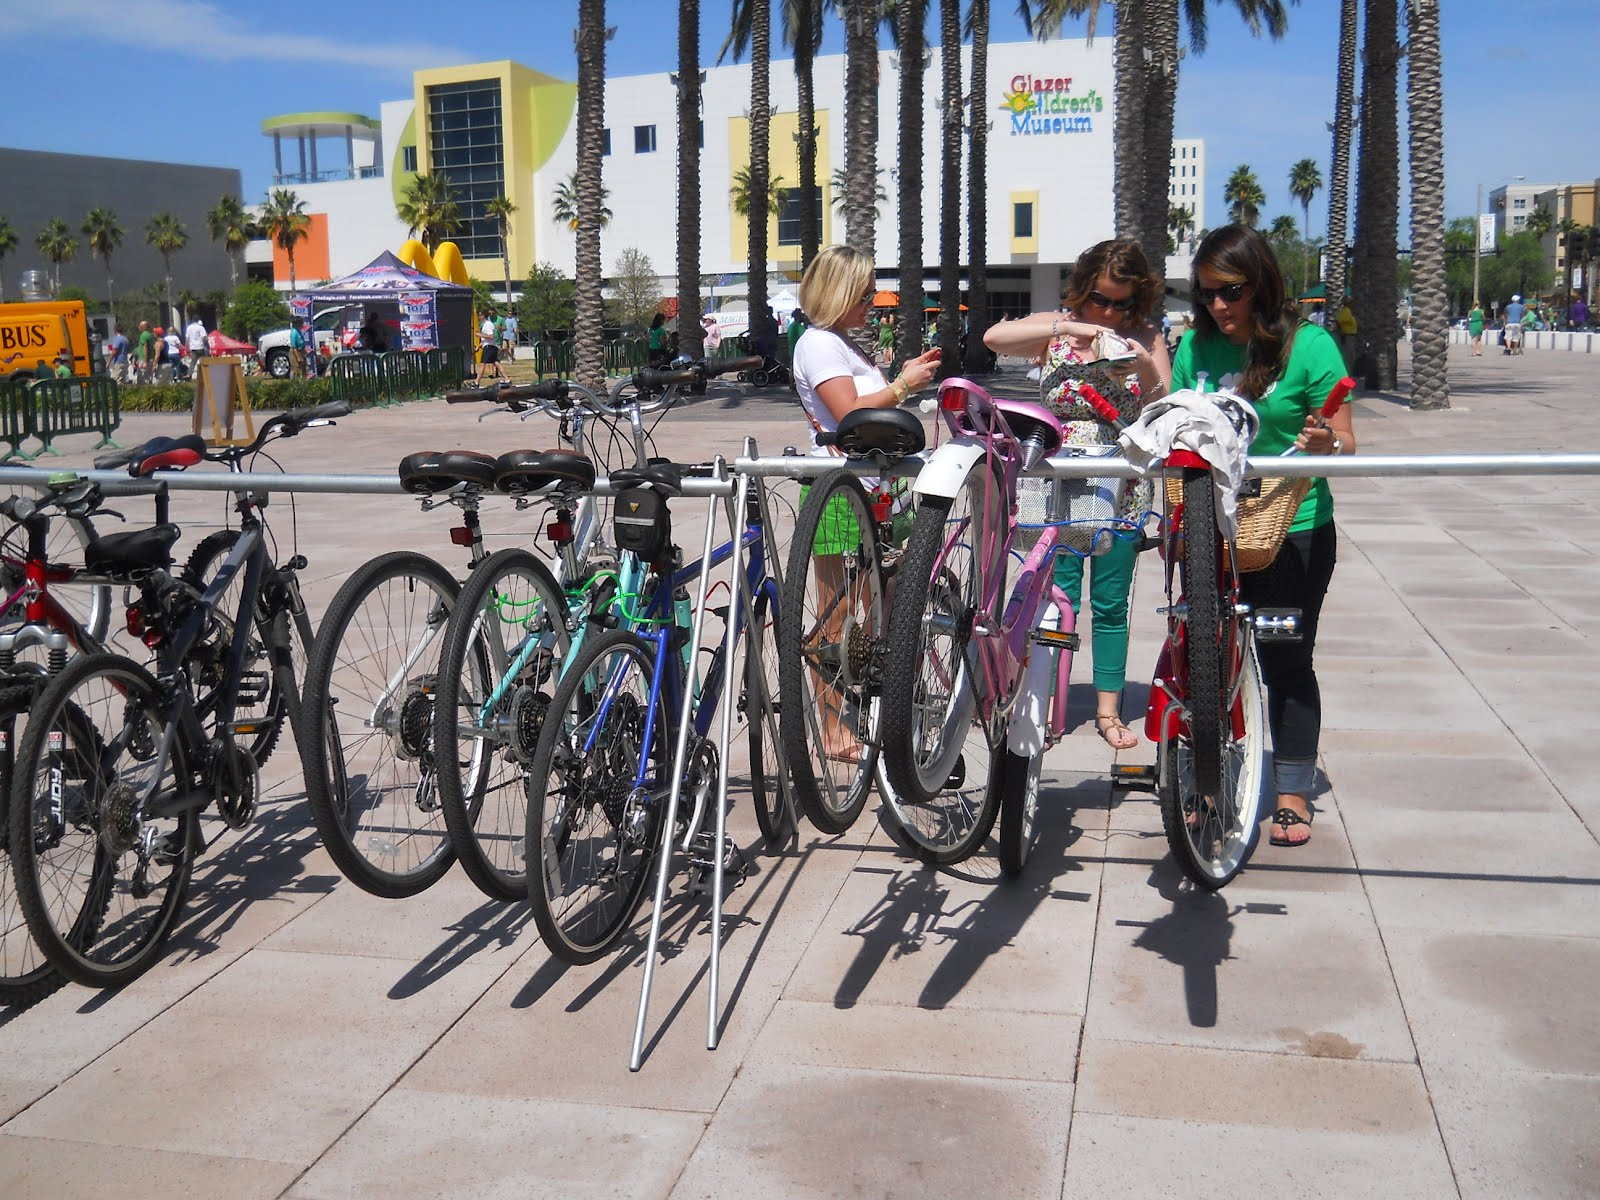 Bike Shop Tampa Fl Bicycle Stories Bike Valet At The Mayor 39s Green River